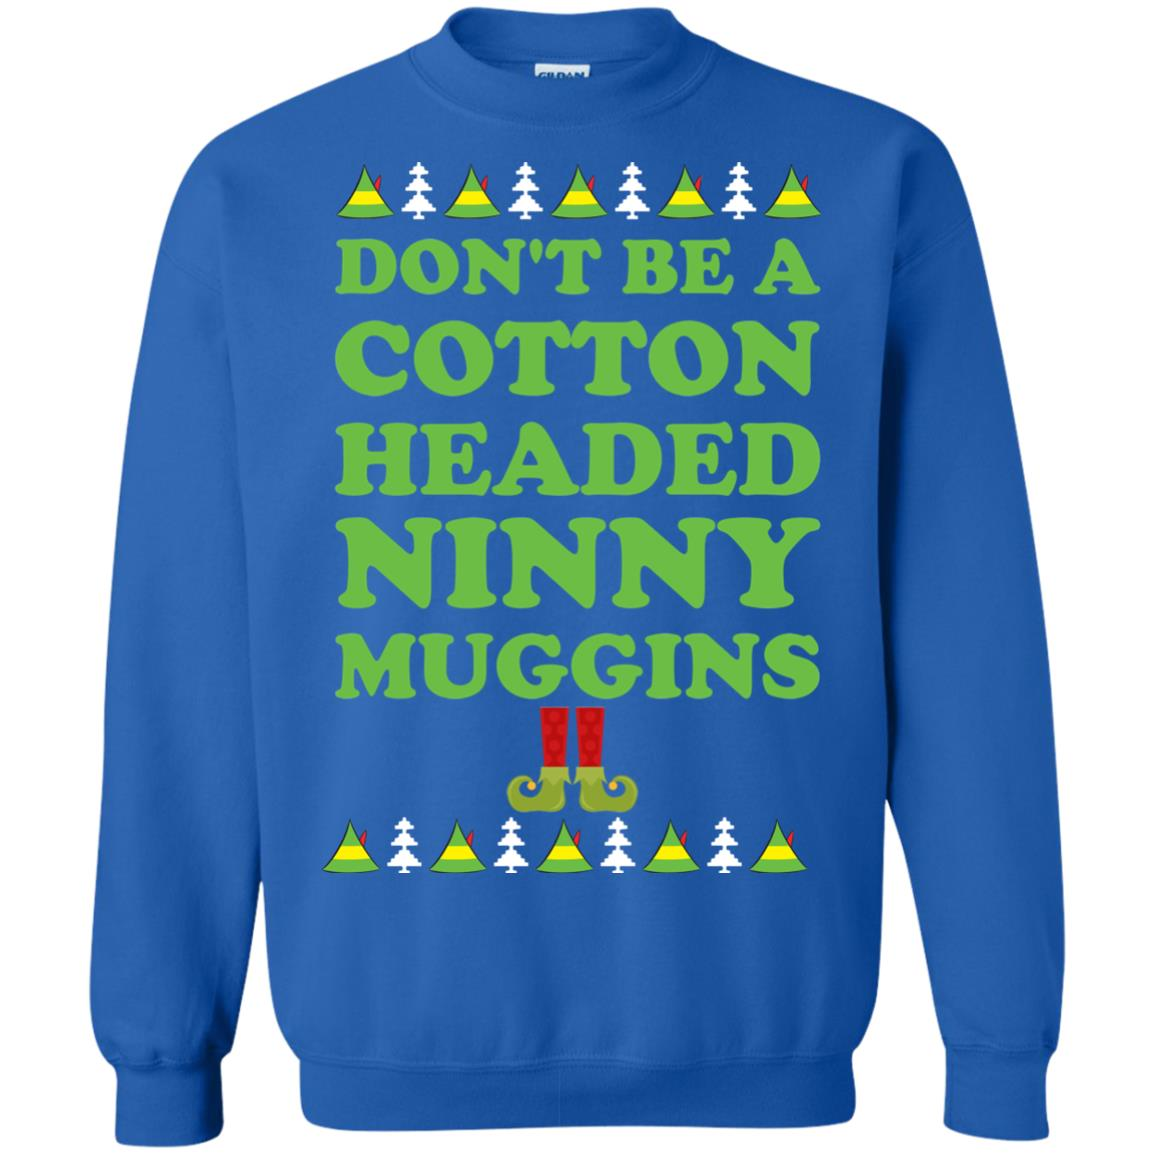 image 2803 - Elf Don't Be a Cotton Headed Ninny Muggins Christmas Sweater, Hoodie